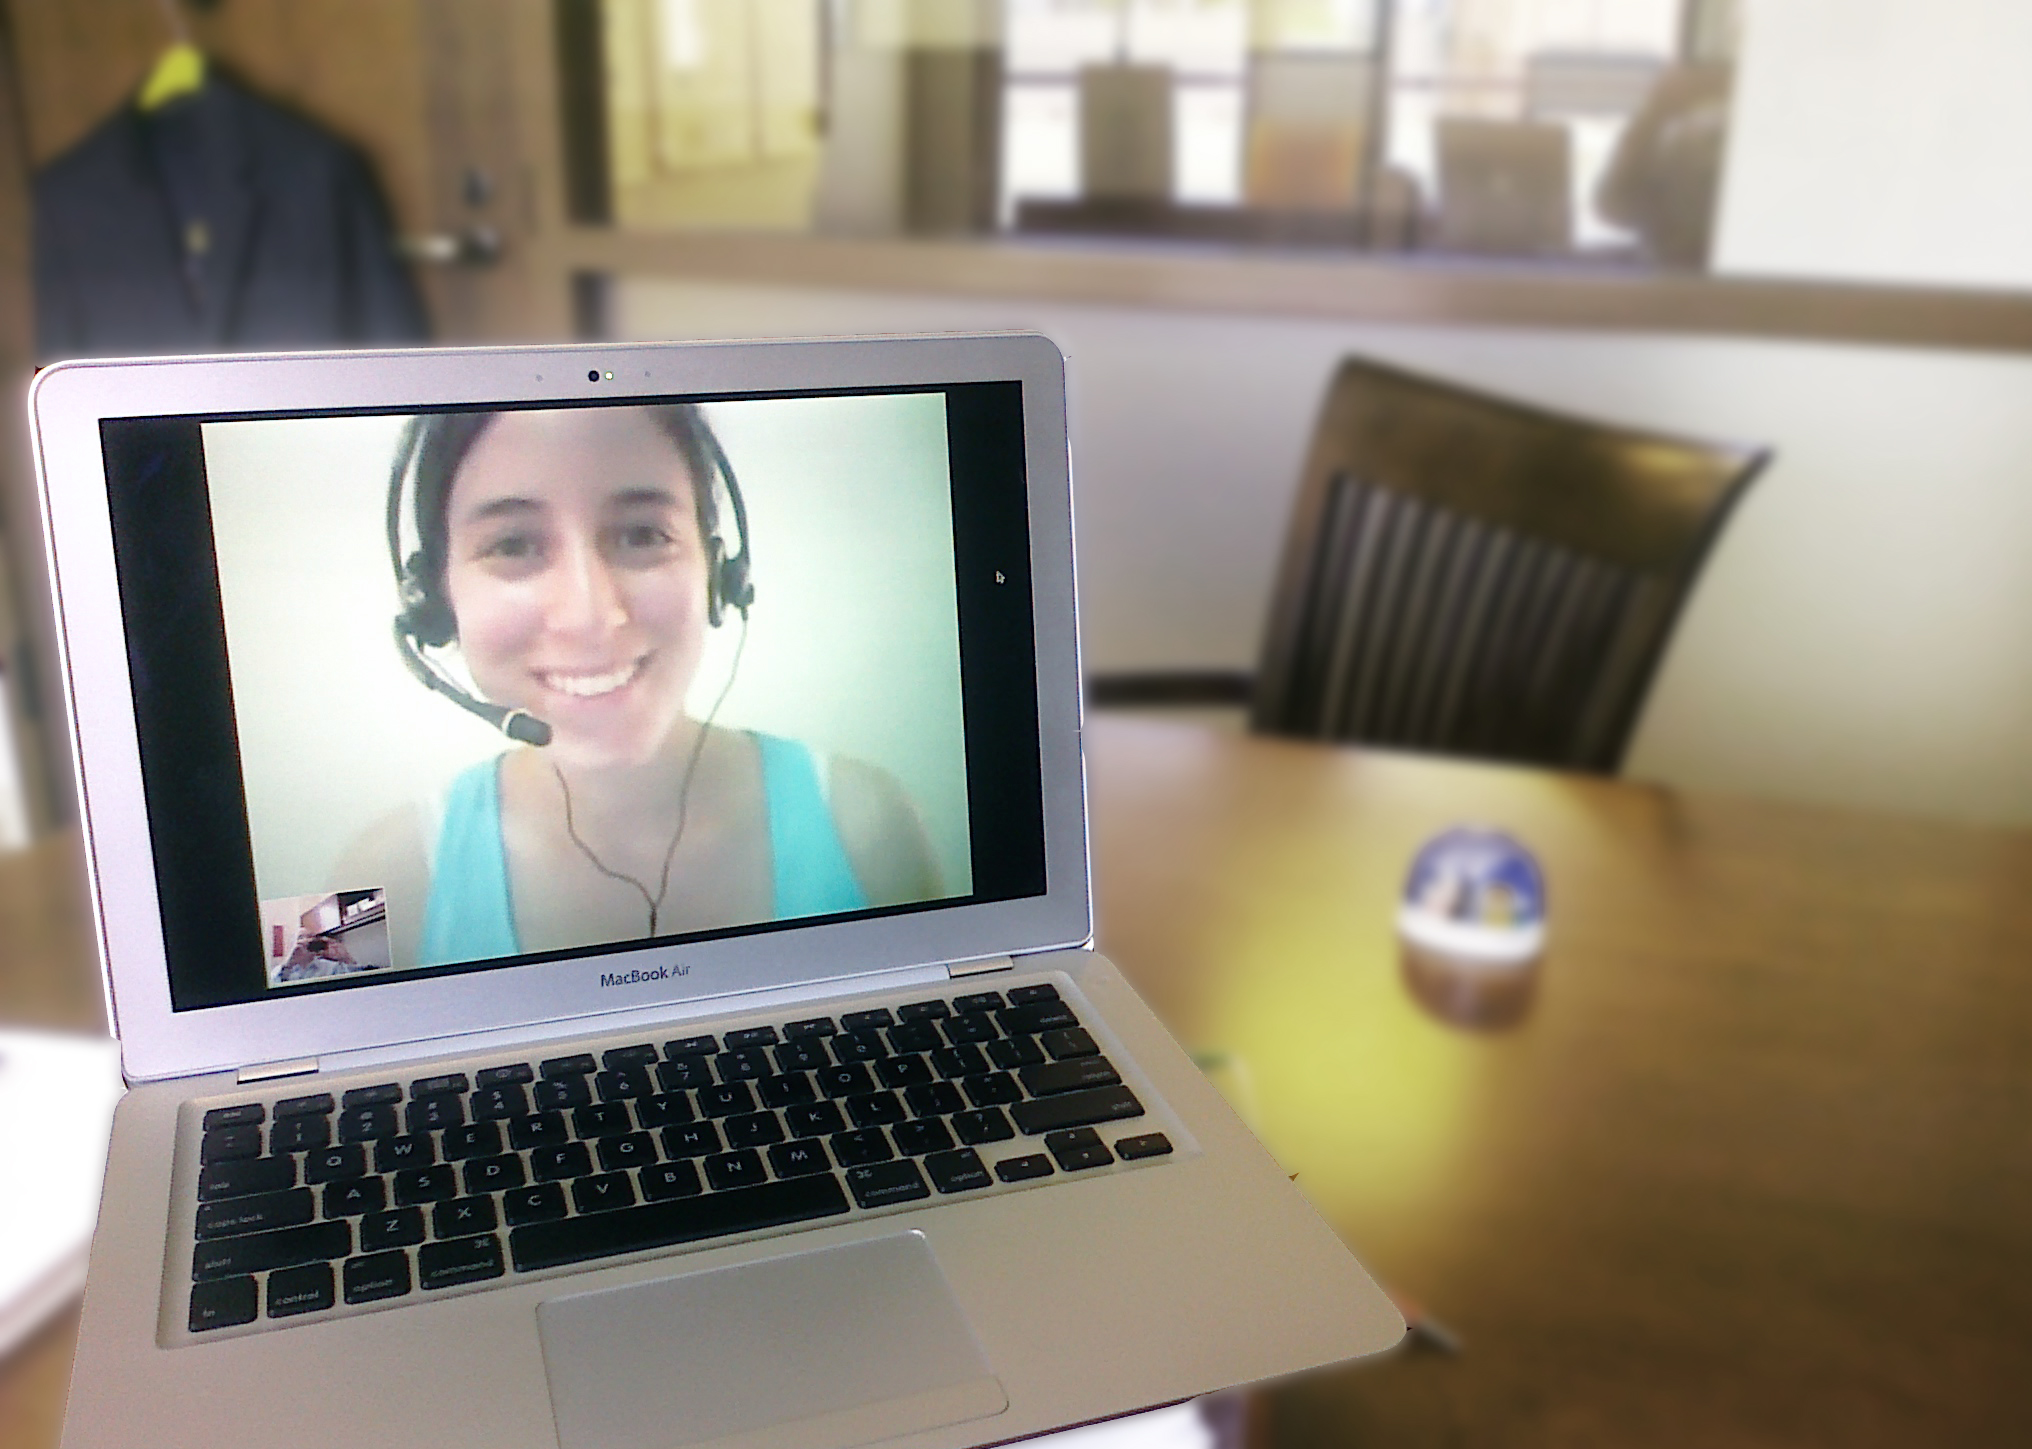 preparing for a Skype video interview with a Korean school